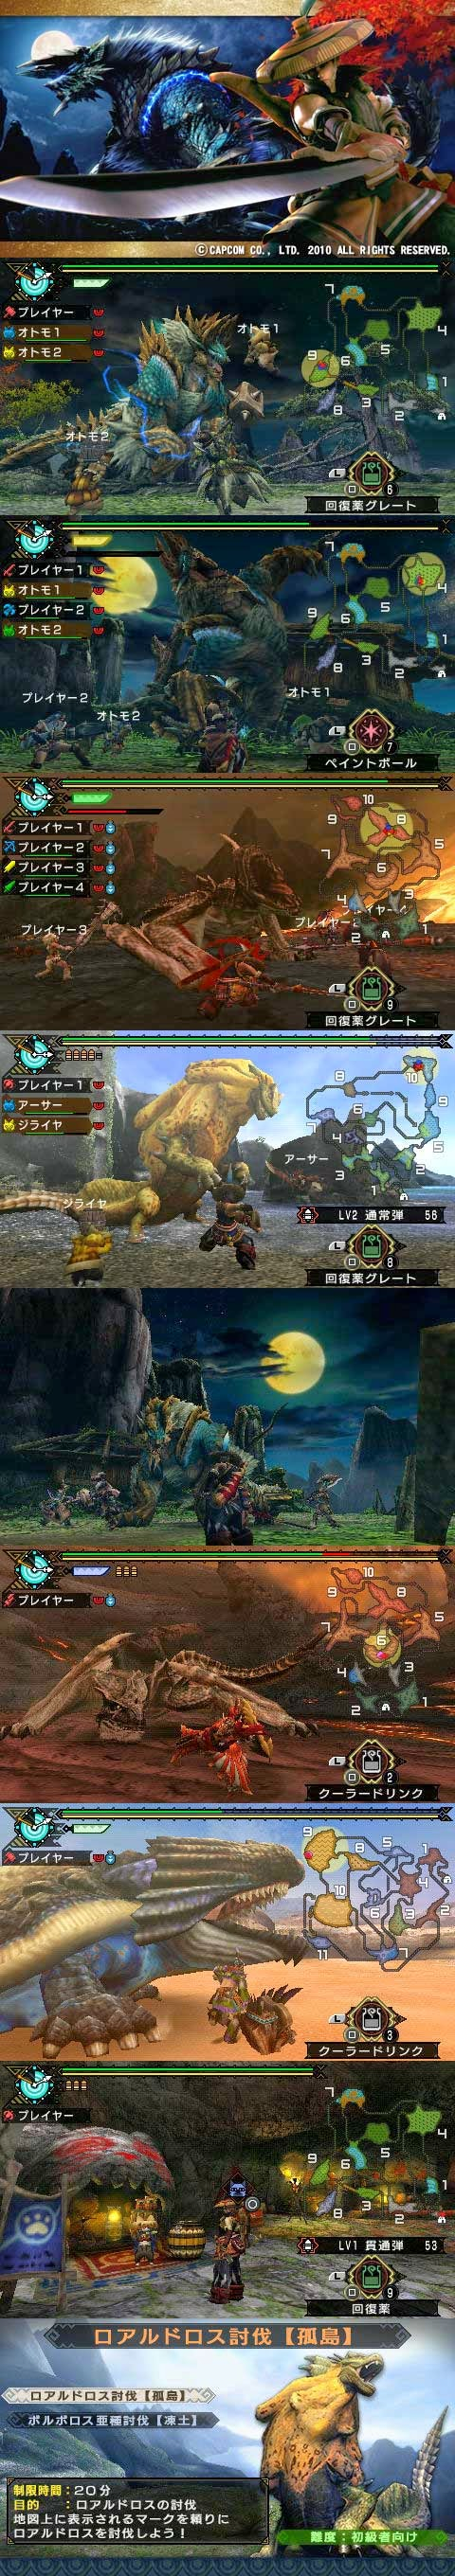 Monster Hunter Portable 3rd Hd English Patch Download Ppsspp